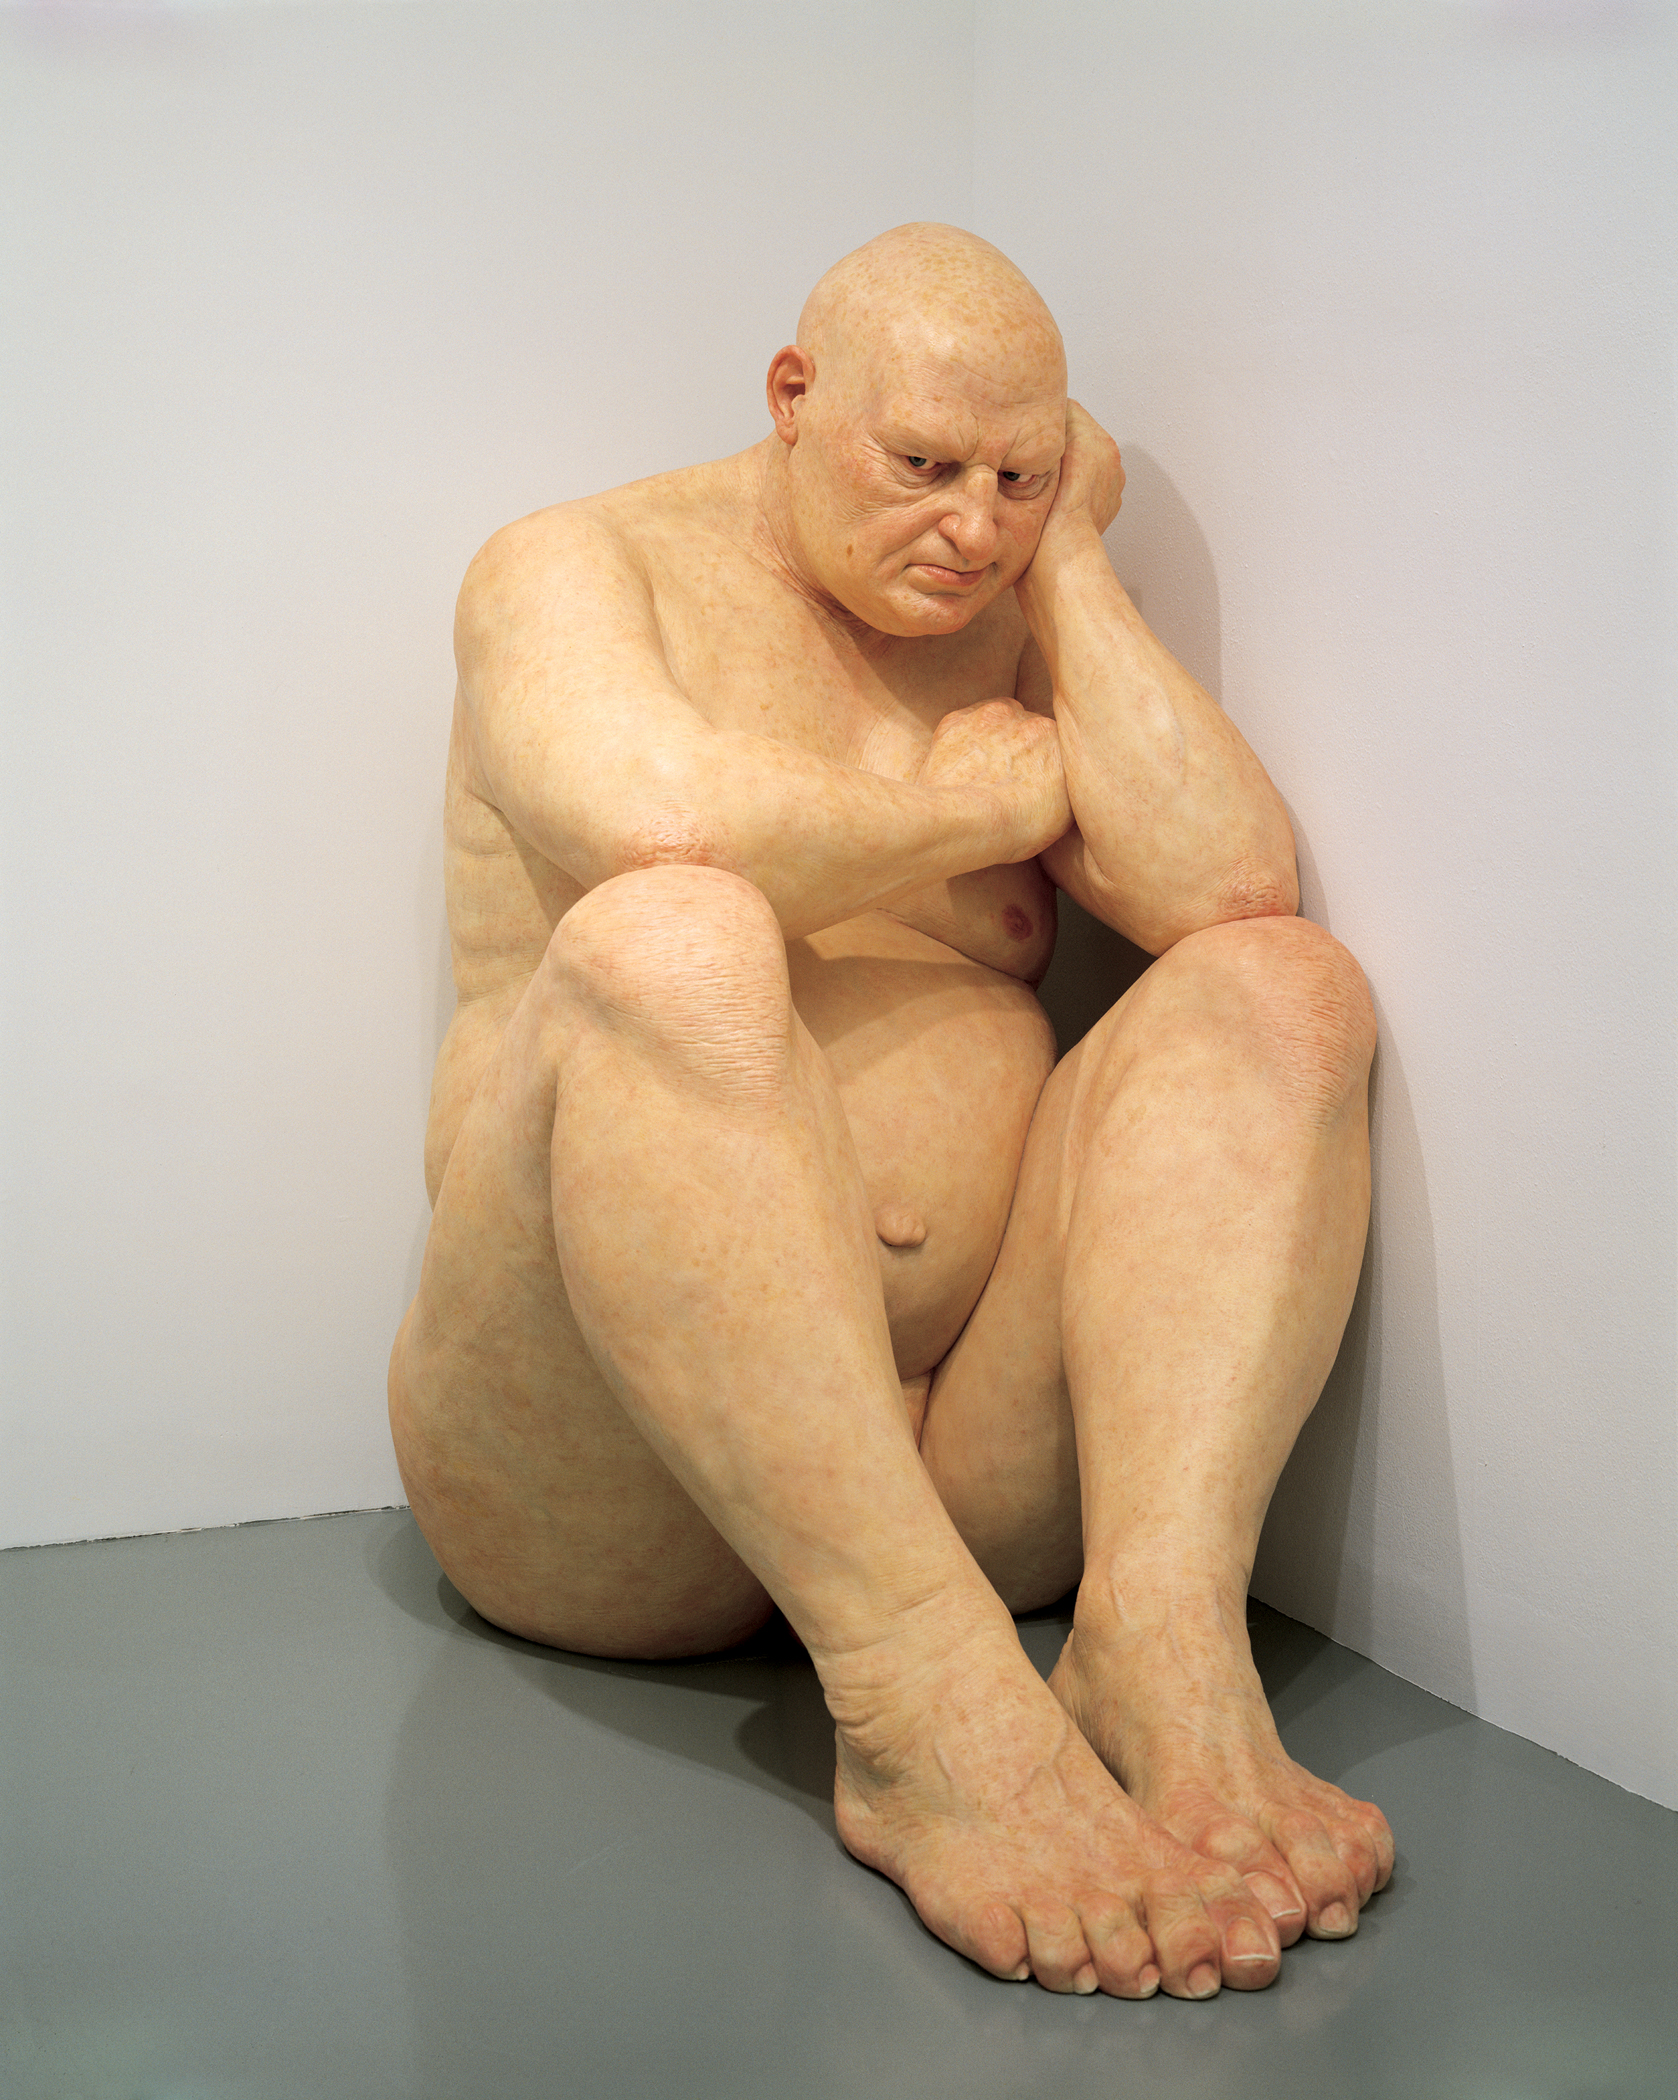 Untitled (Big Man)